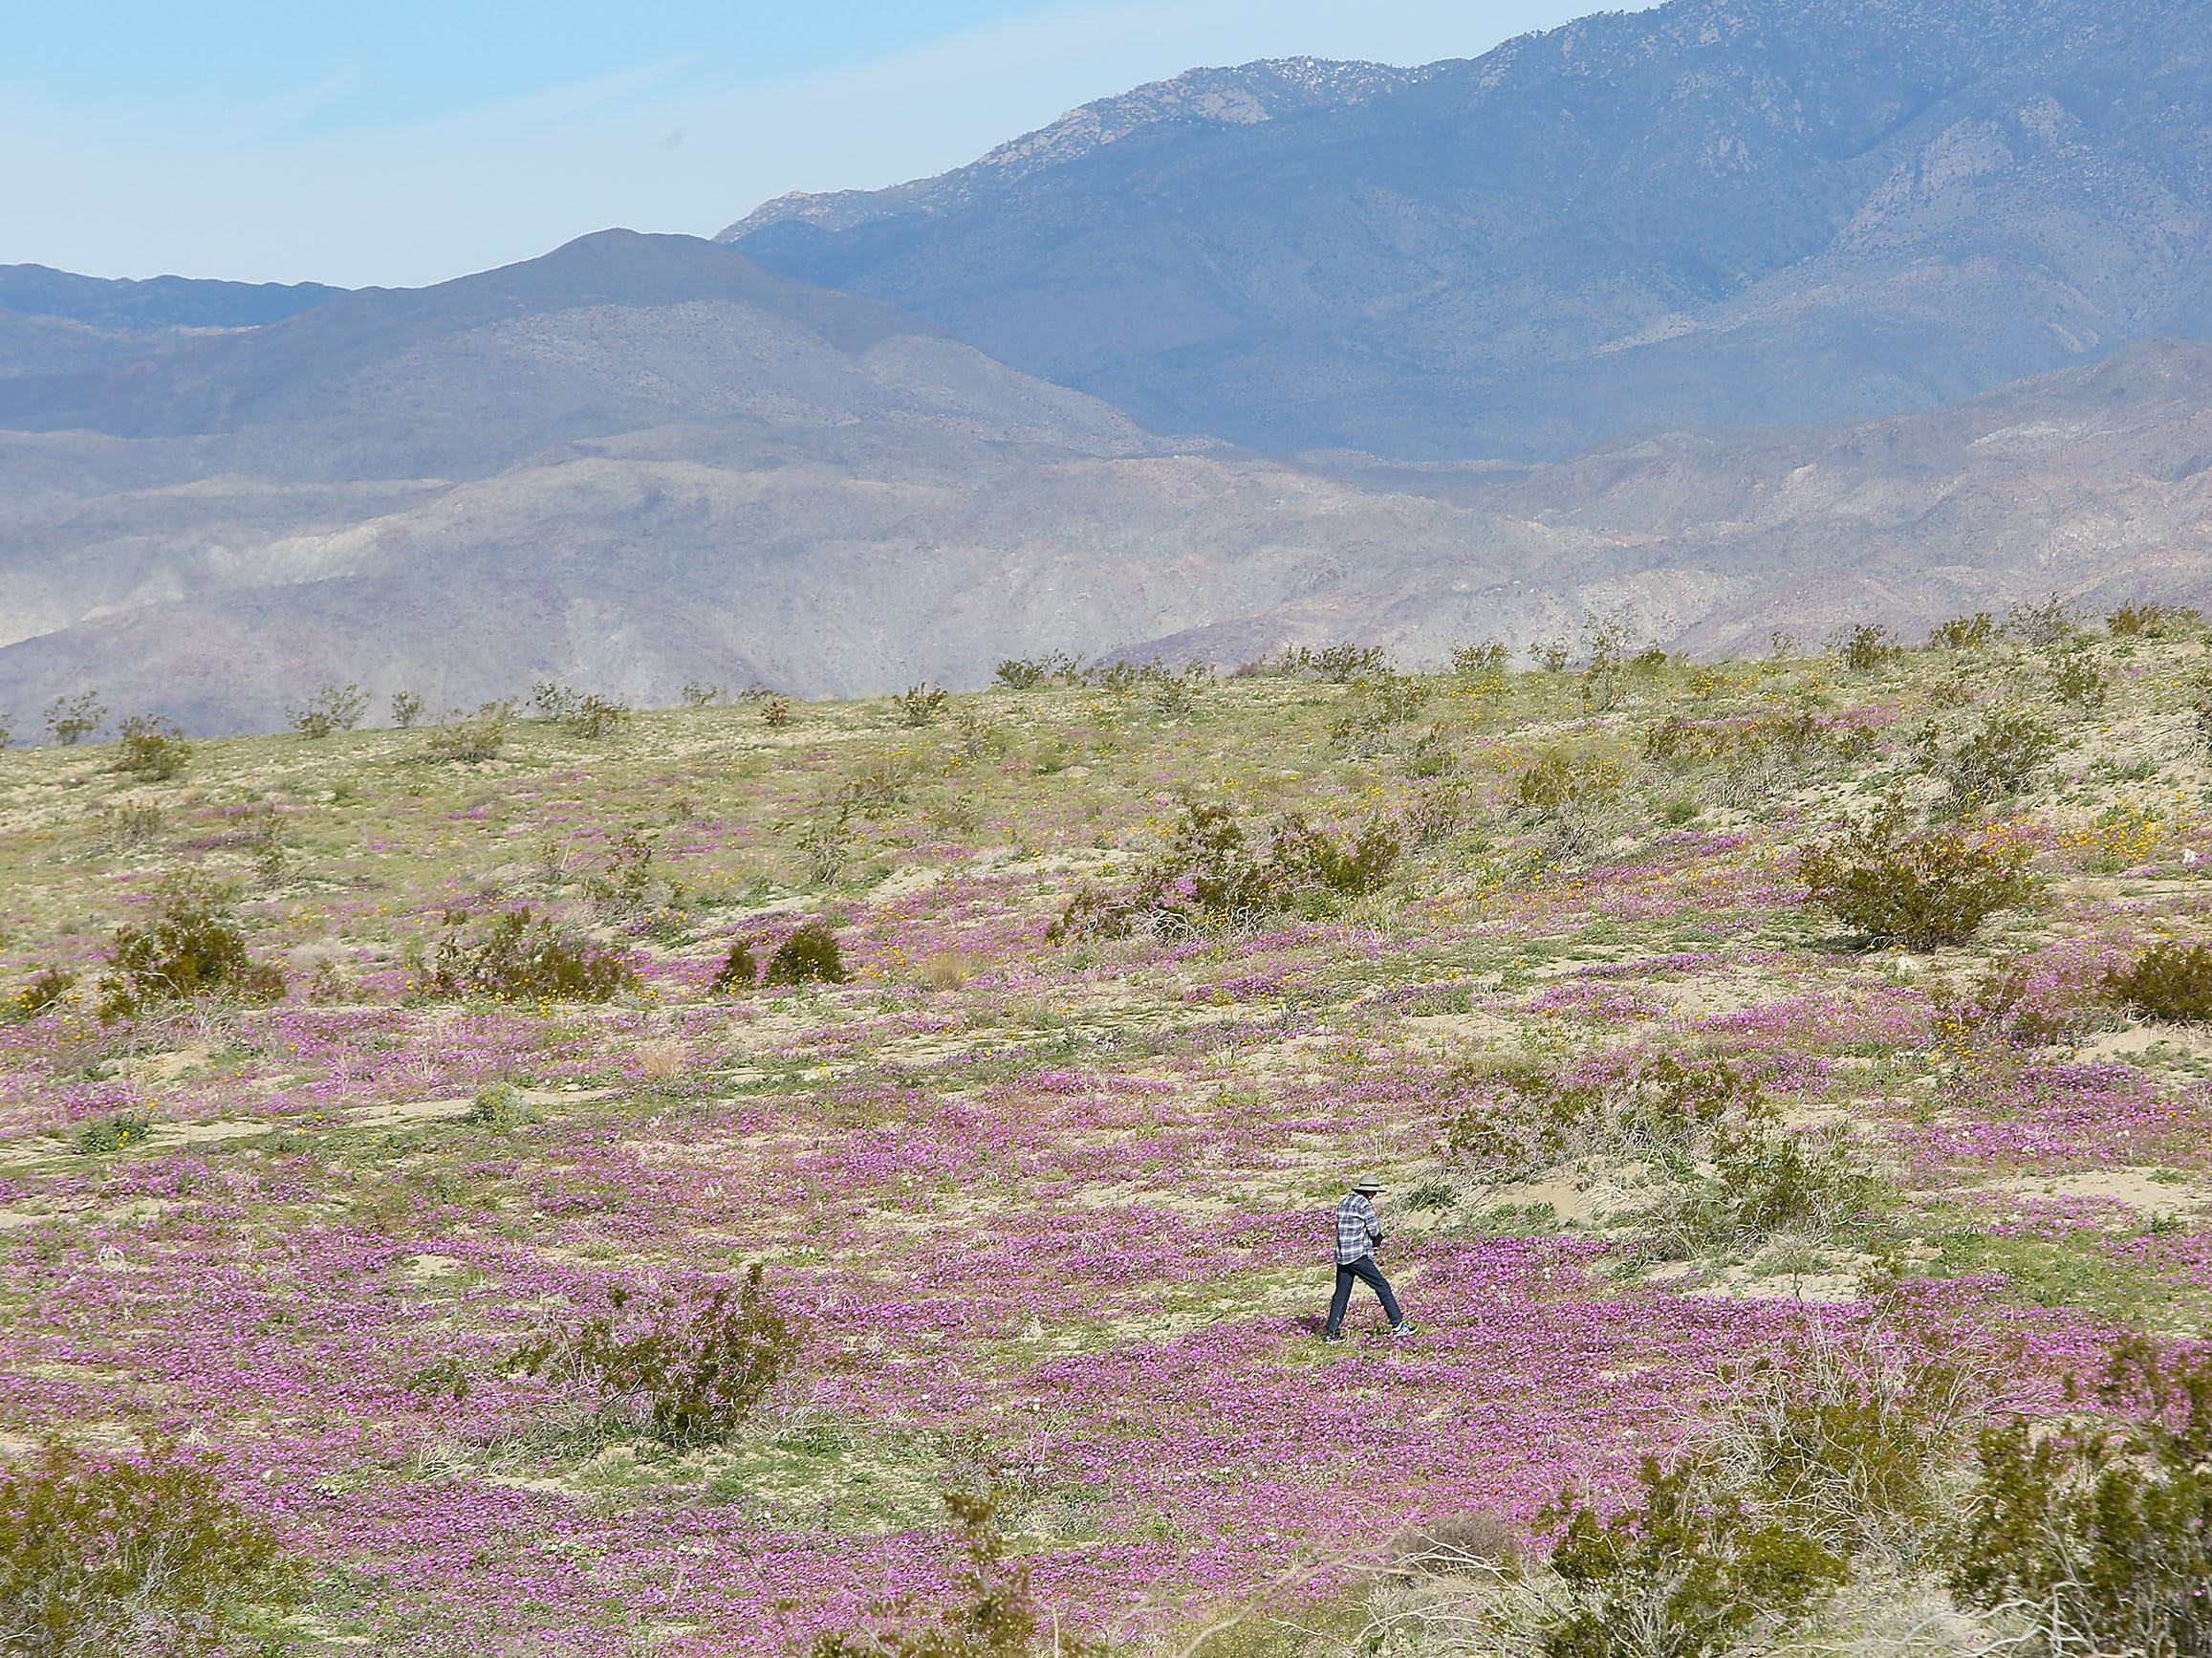 A visitor to the Anza Borrego Desert State Park checks out the wildflower bloom near Borrego Springs, California, March 1, 2019.